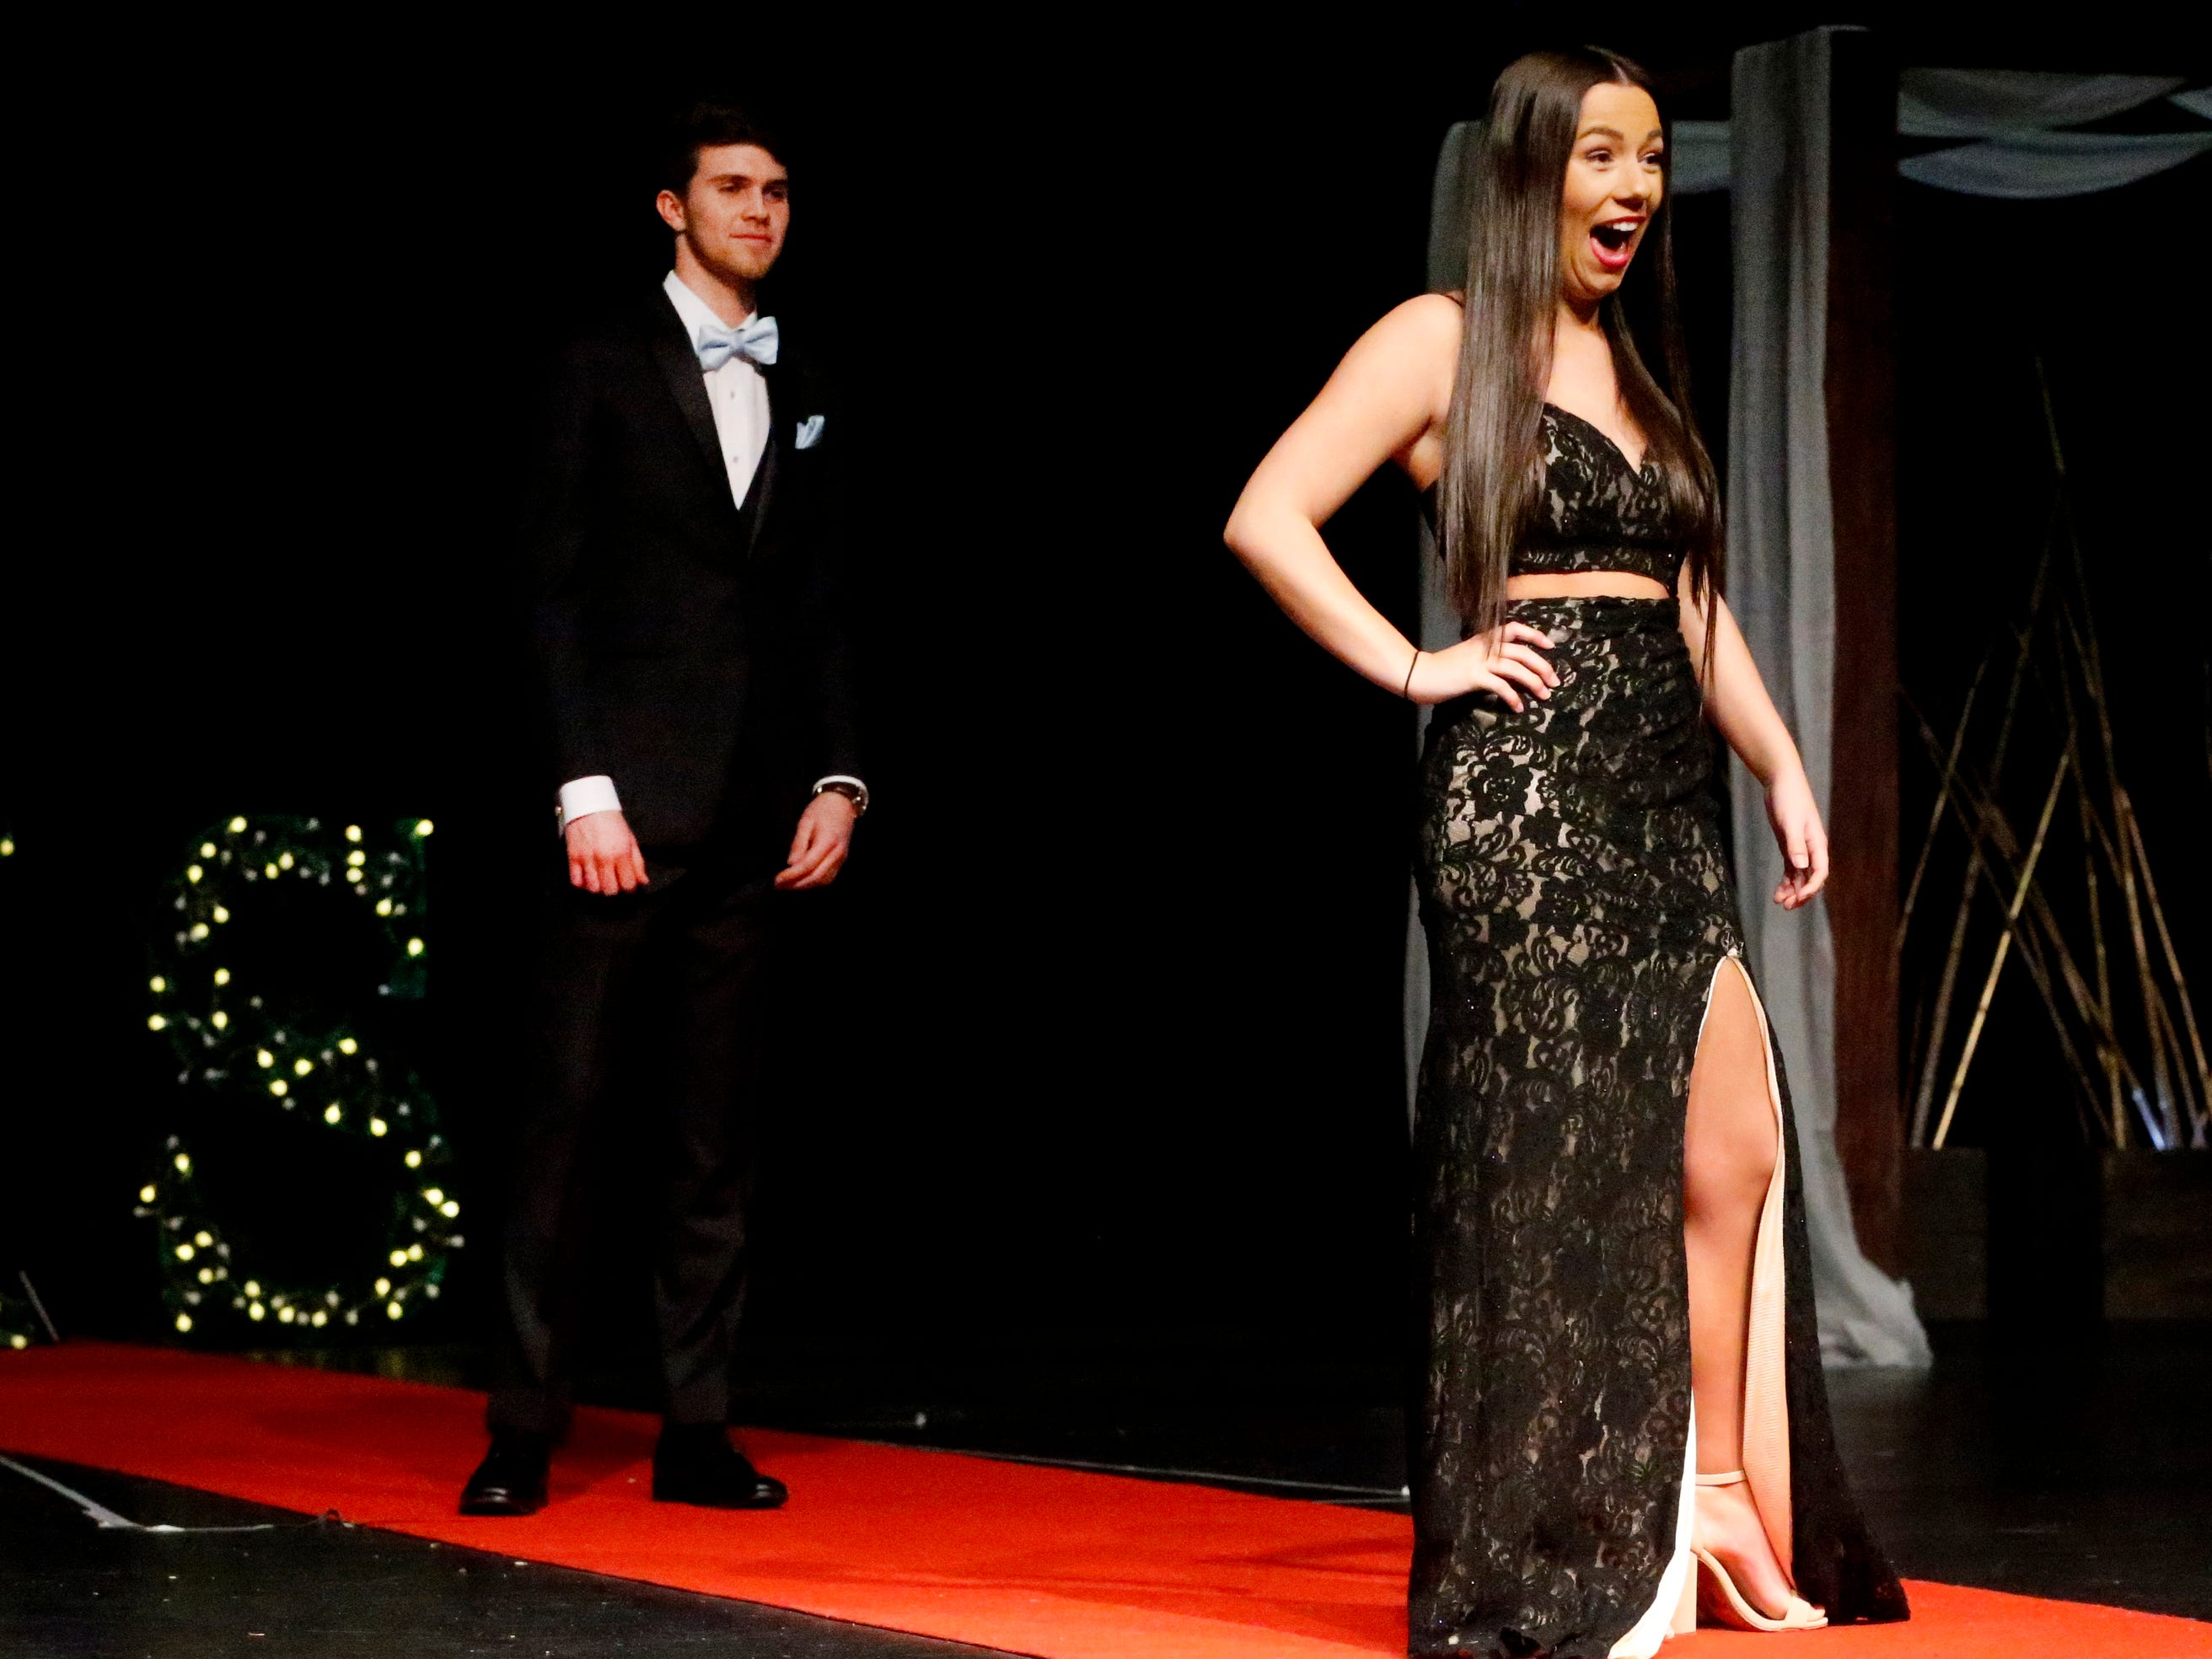 Whitney Tallant steps forward to show off her dress as Connor Beckham waits to show off his tux during the Siegel Prom Fashion show on Thursday, Feb. 14, 2019.